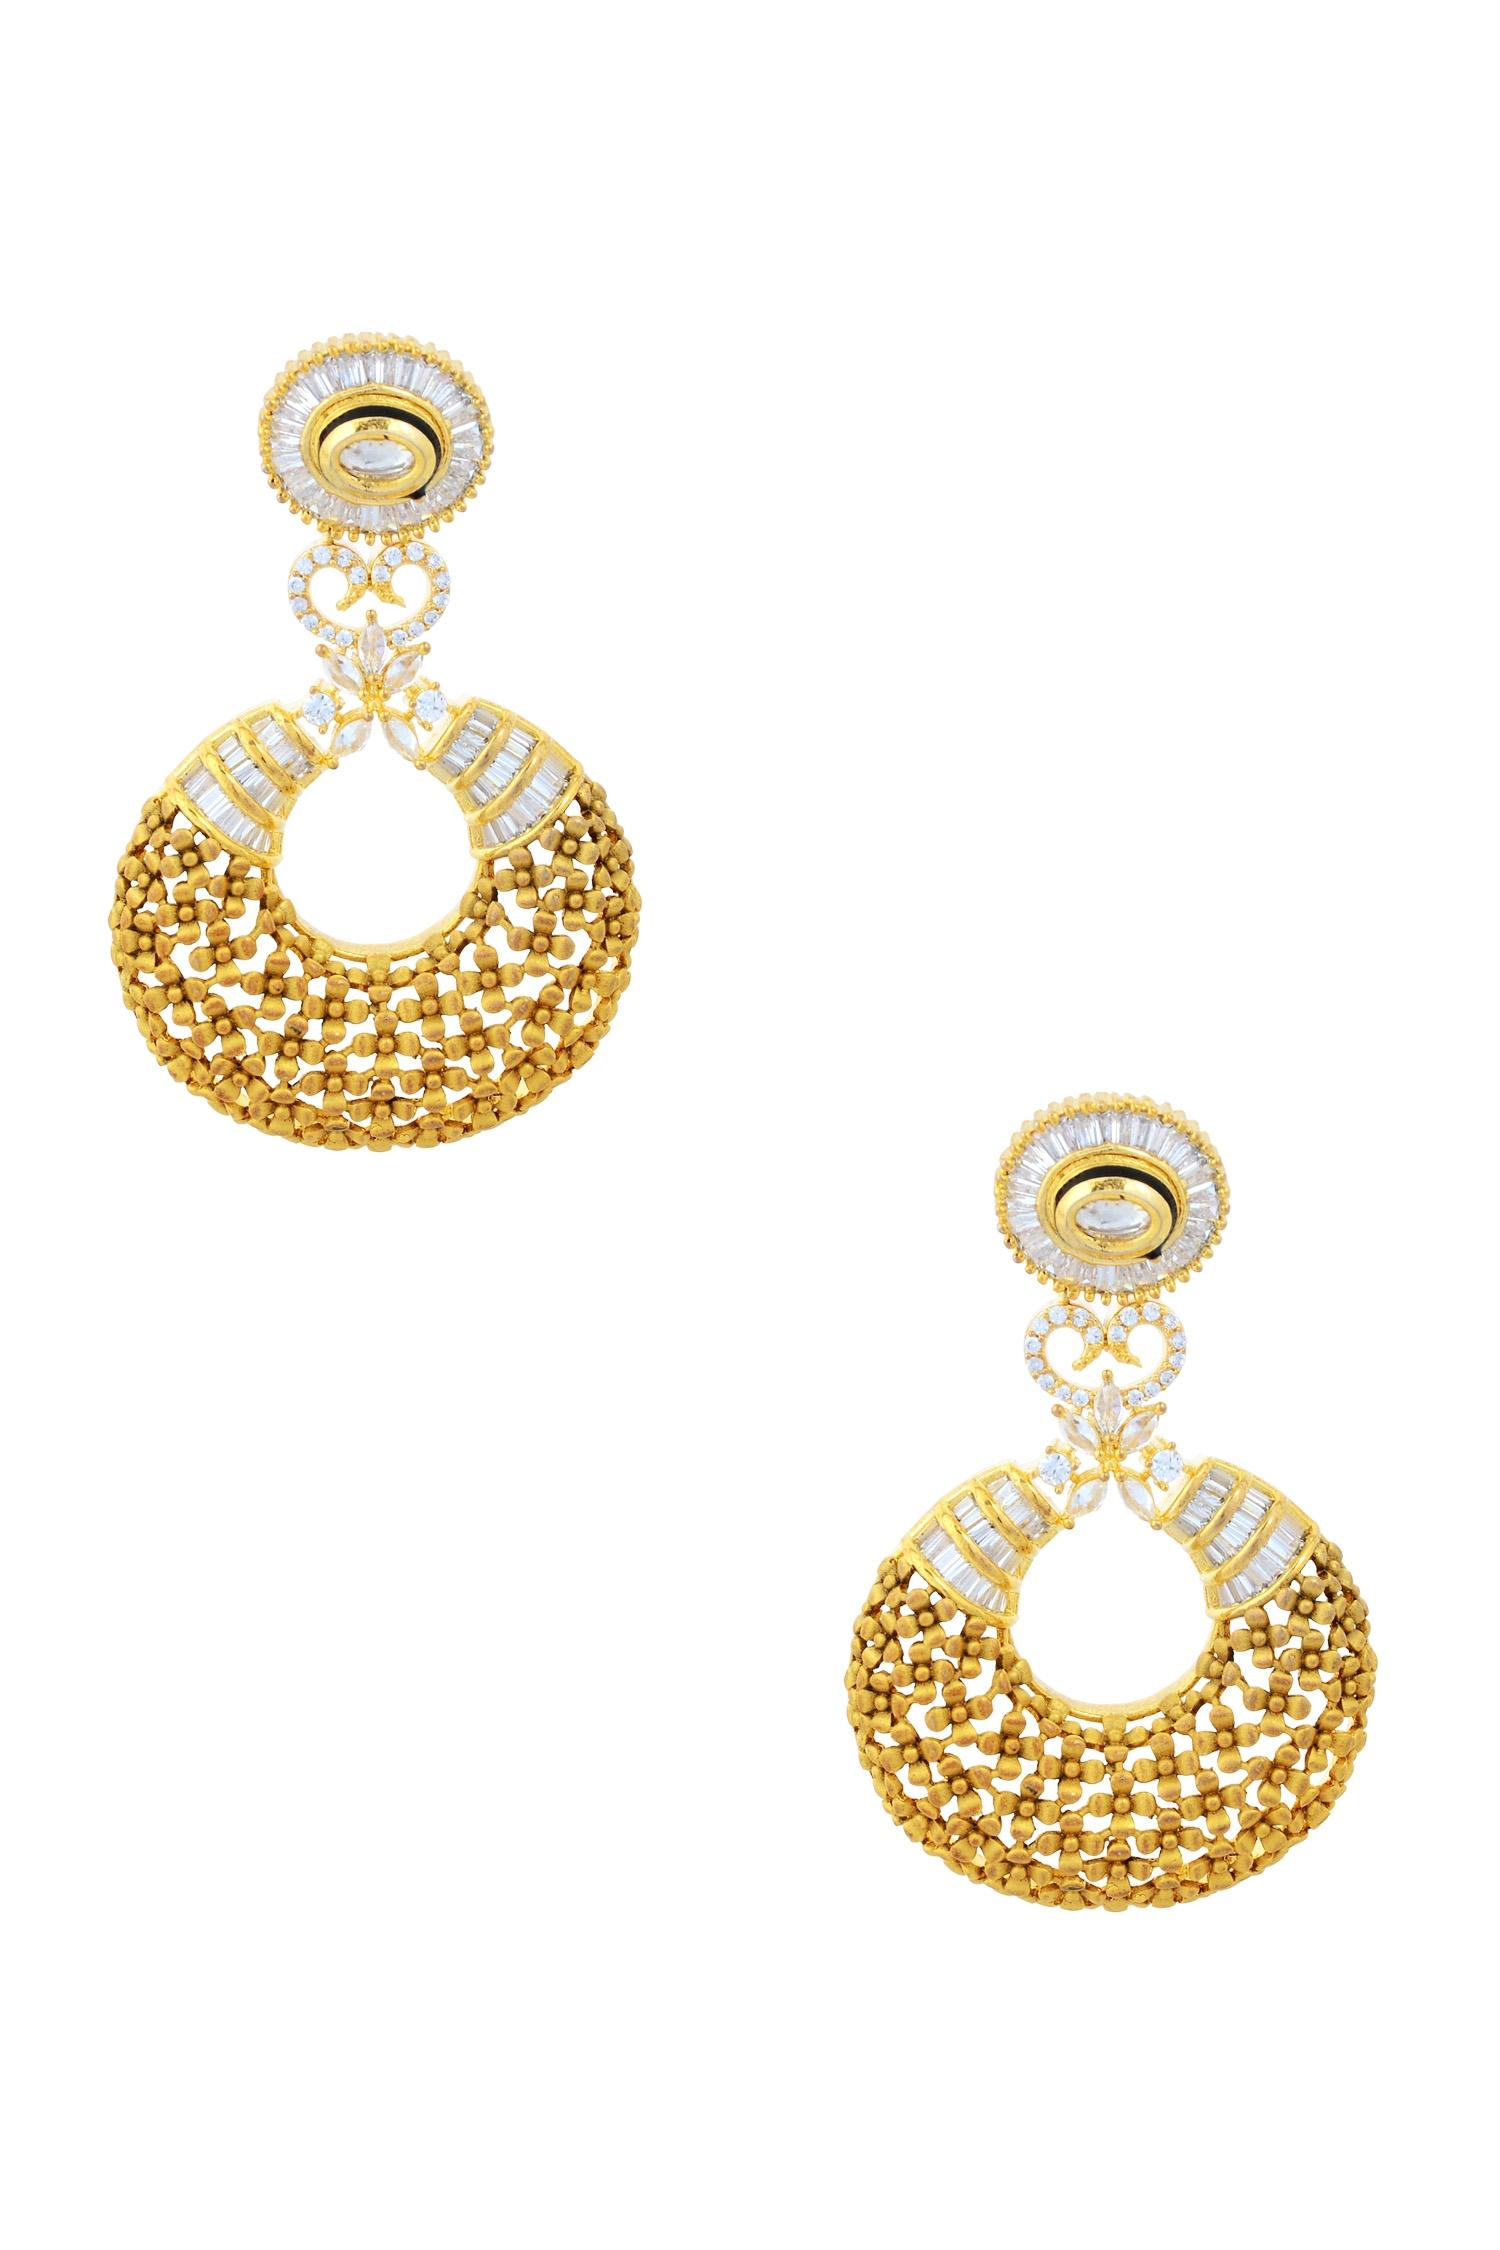 Khushi Jewels Collection